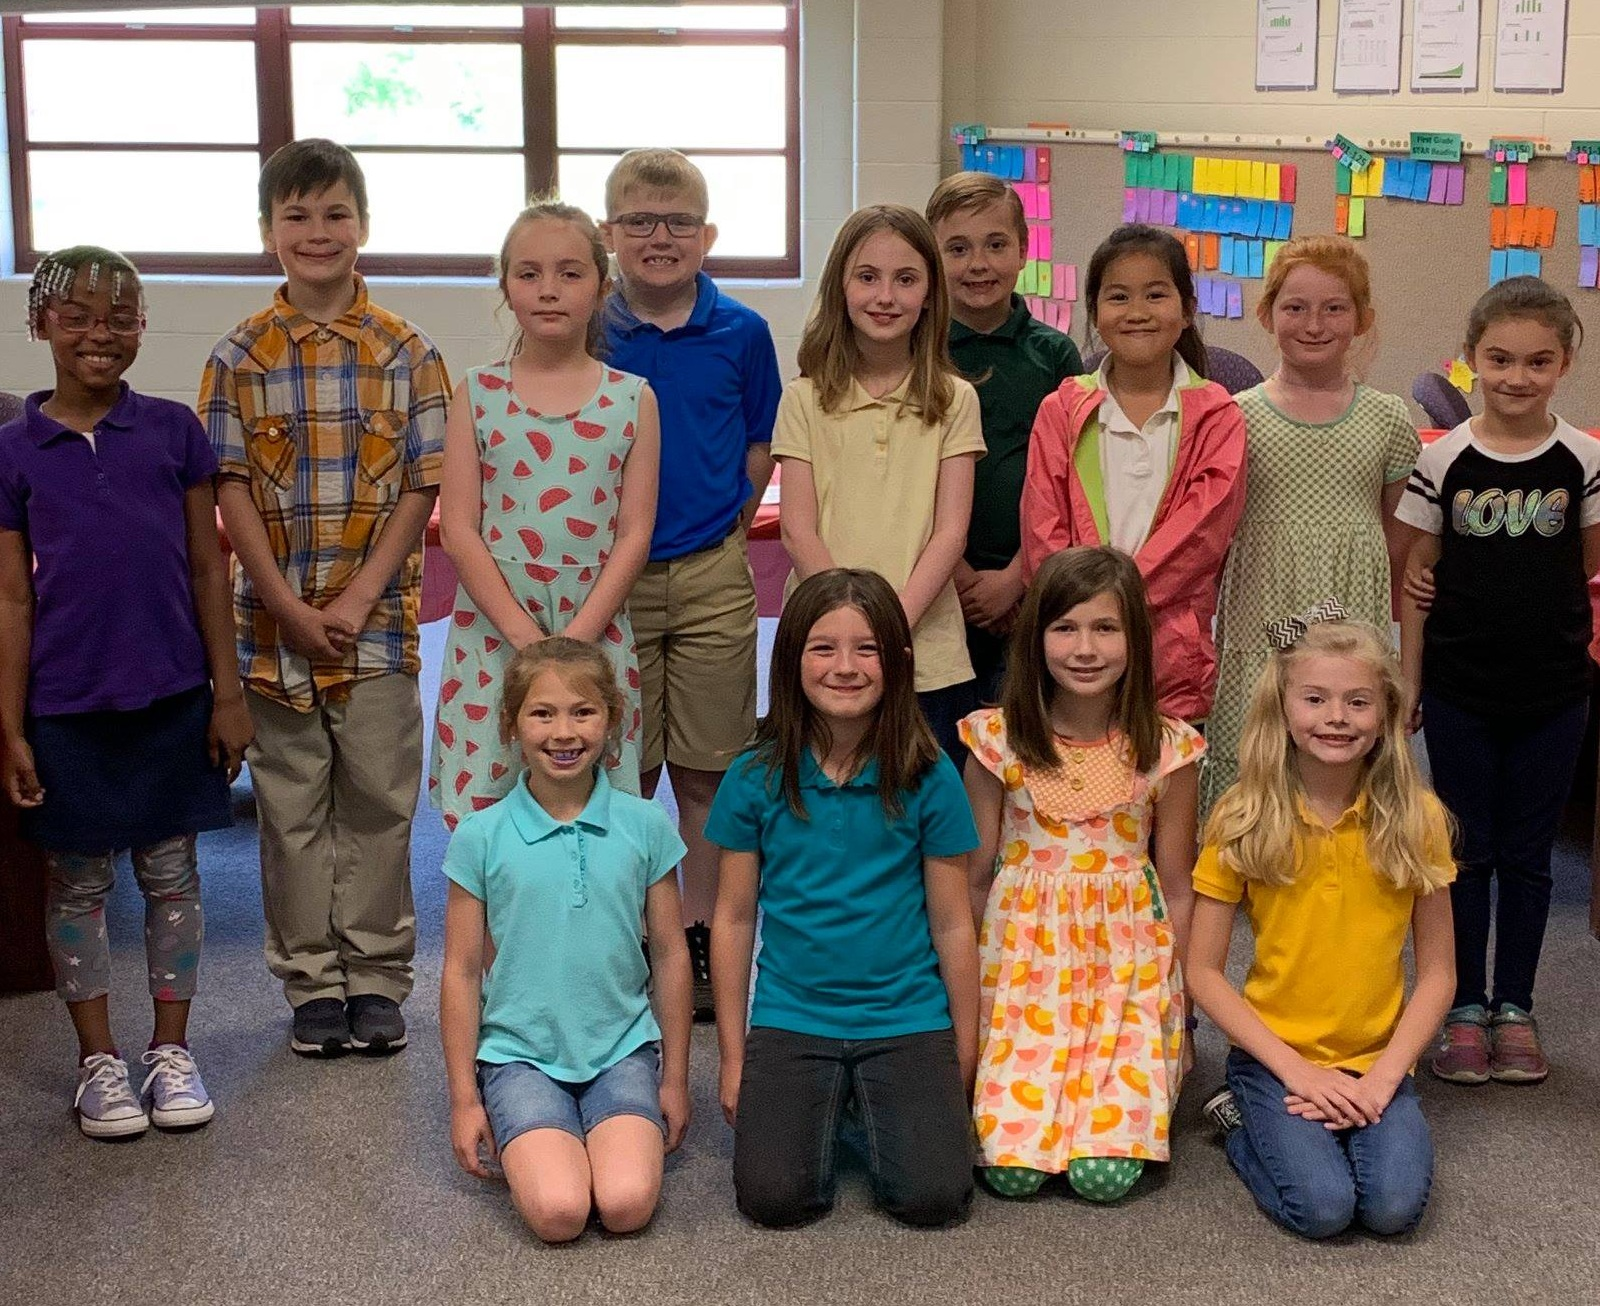 Dyersburg Primary School's Student Leadership Team